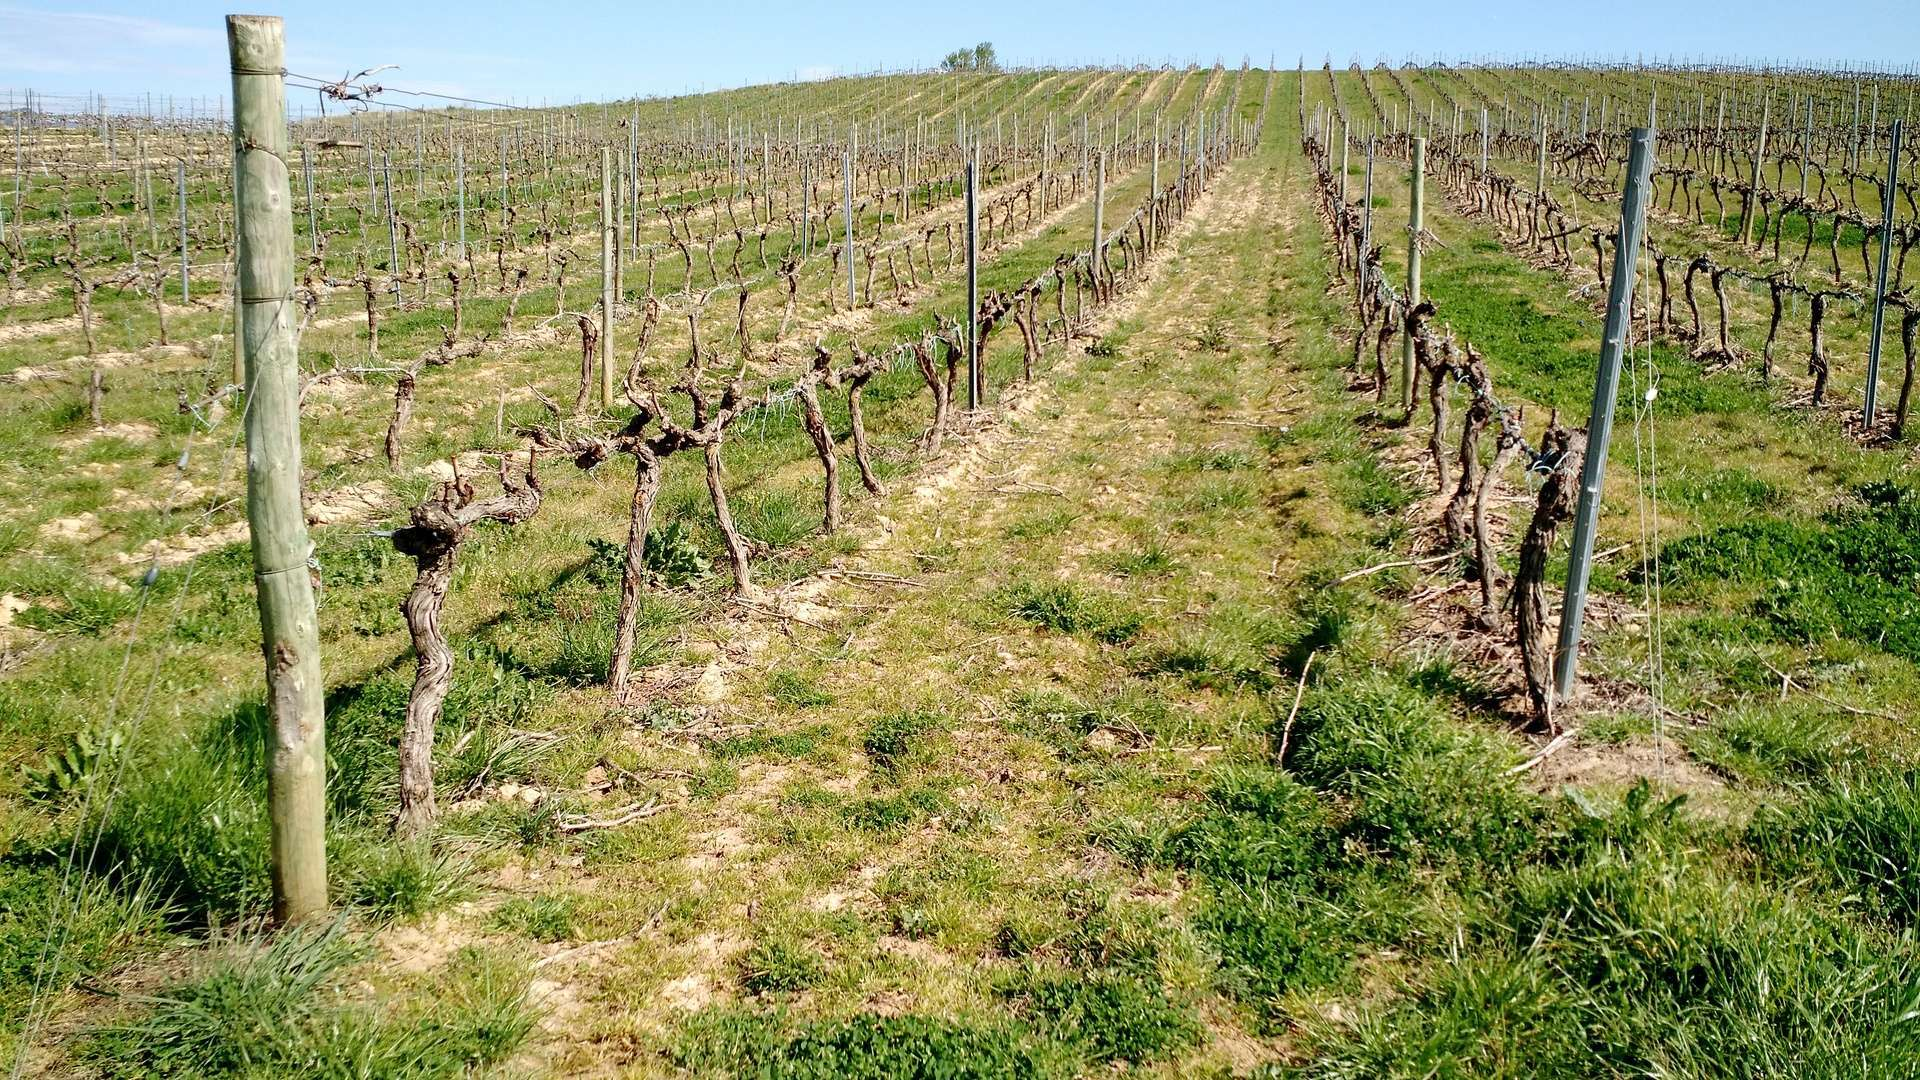 One of the vineyards on La Ruta del Vino